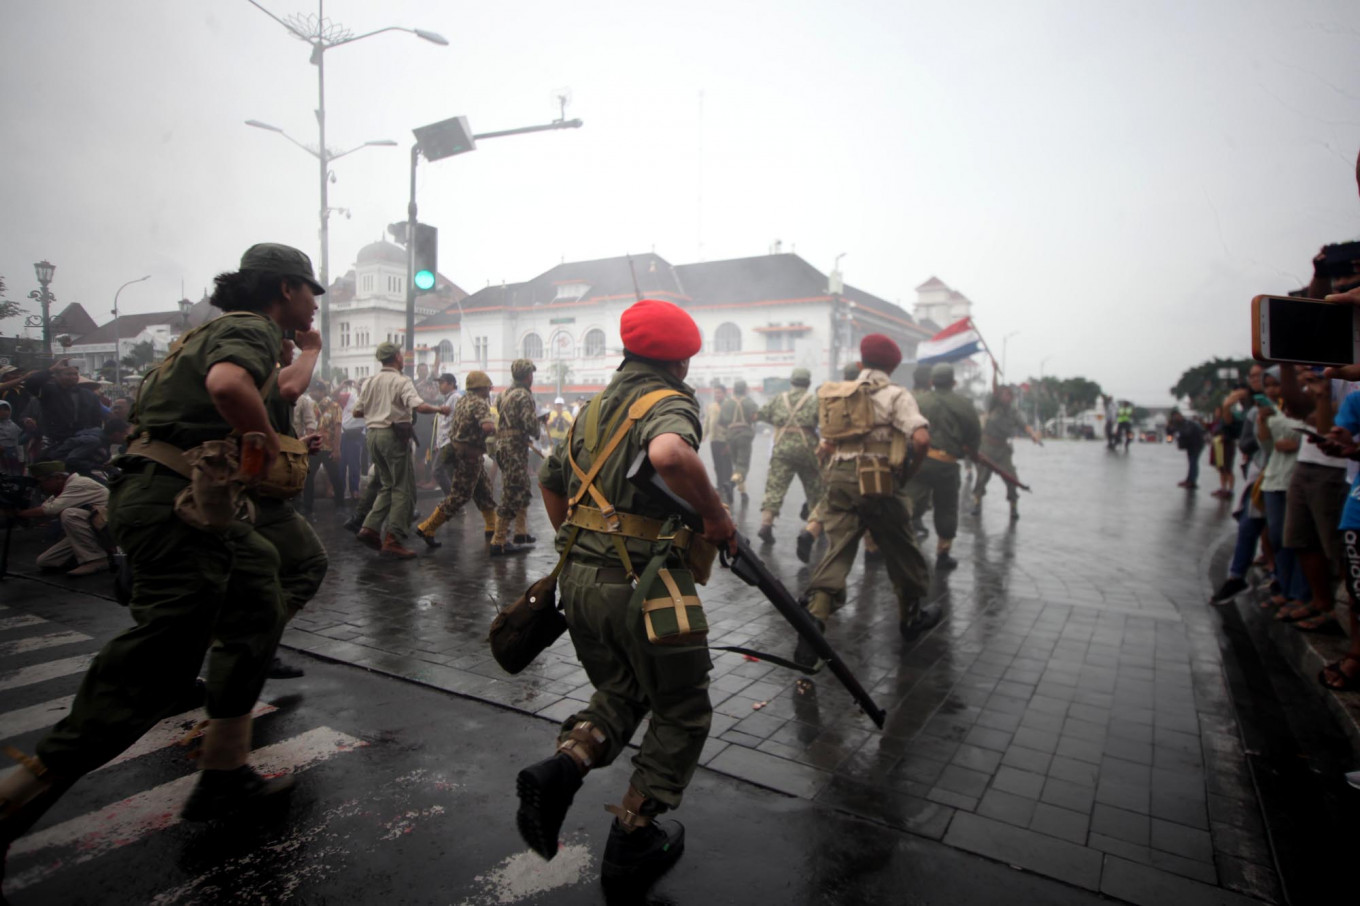 Dutch military reenactors attack mock Indonesian independence fighters during the performance. JP/Boy T. Harjanto